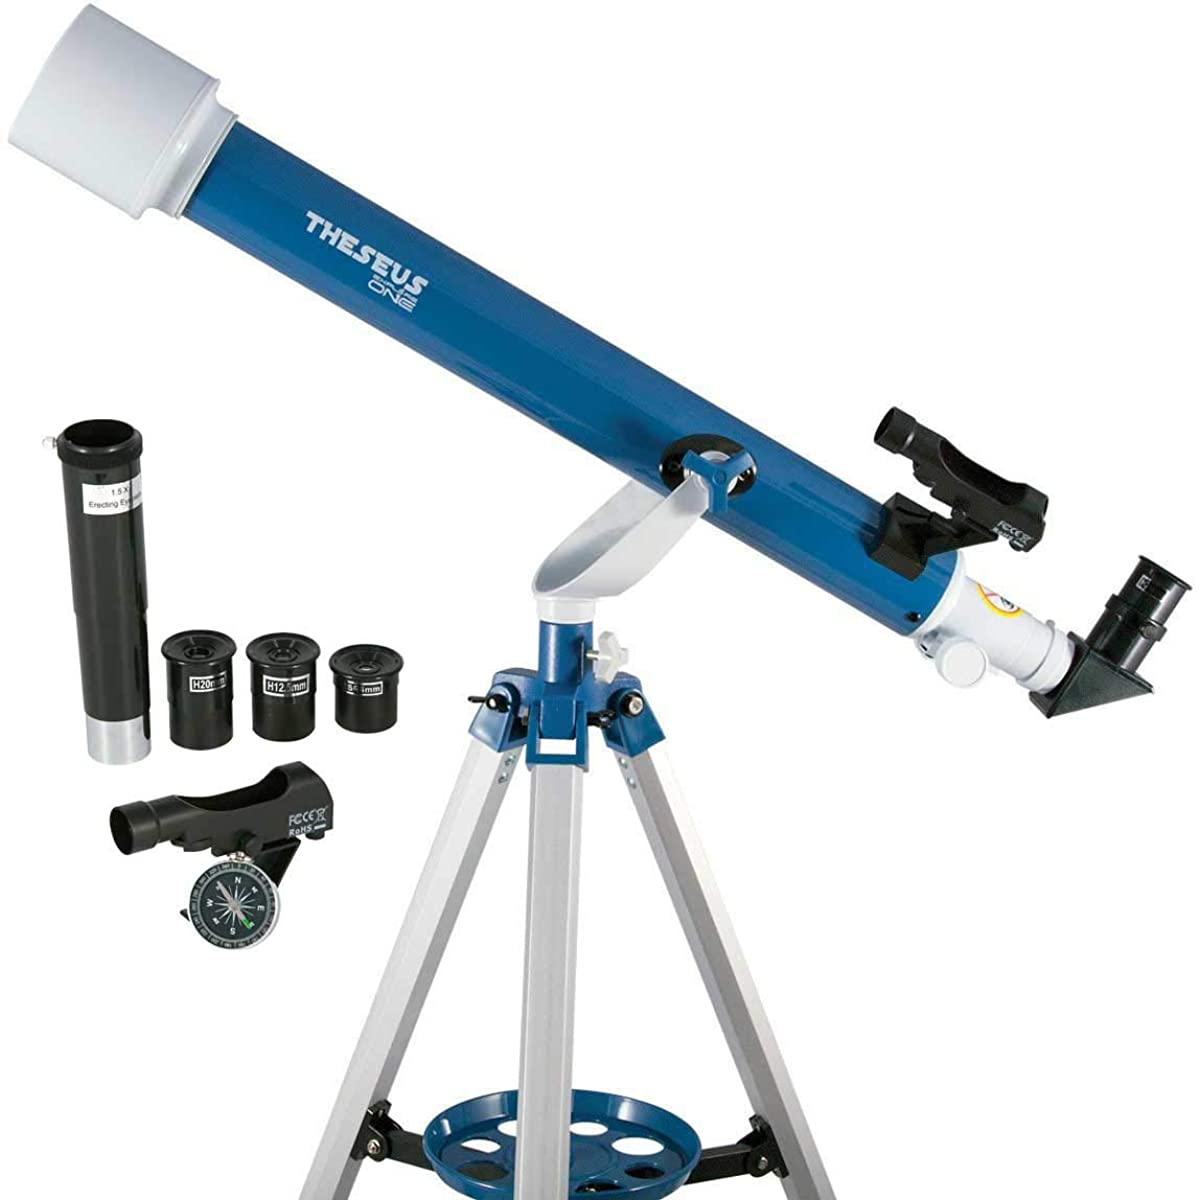 ExploreOne 60mm Telescope for Astronomy Beginners and Teens, Travel Scope with Adjustable Tripod & Finder Scope & Three Eyepieces & Barlow Lens & Moon Filter - with Carry Case Storage